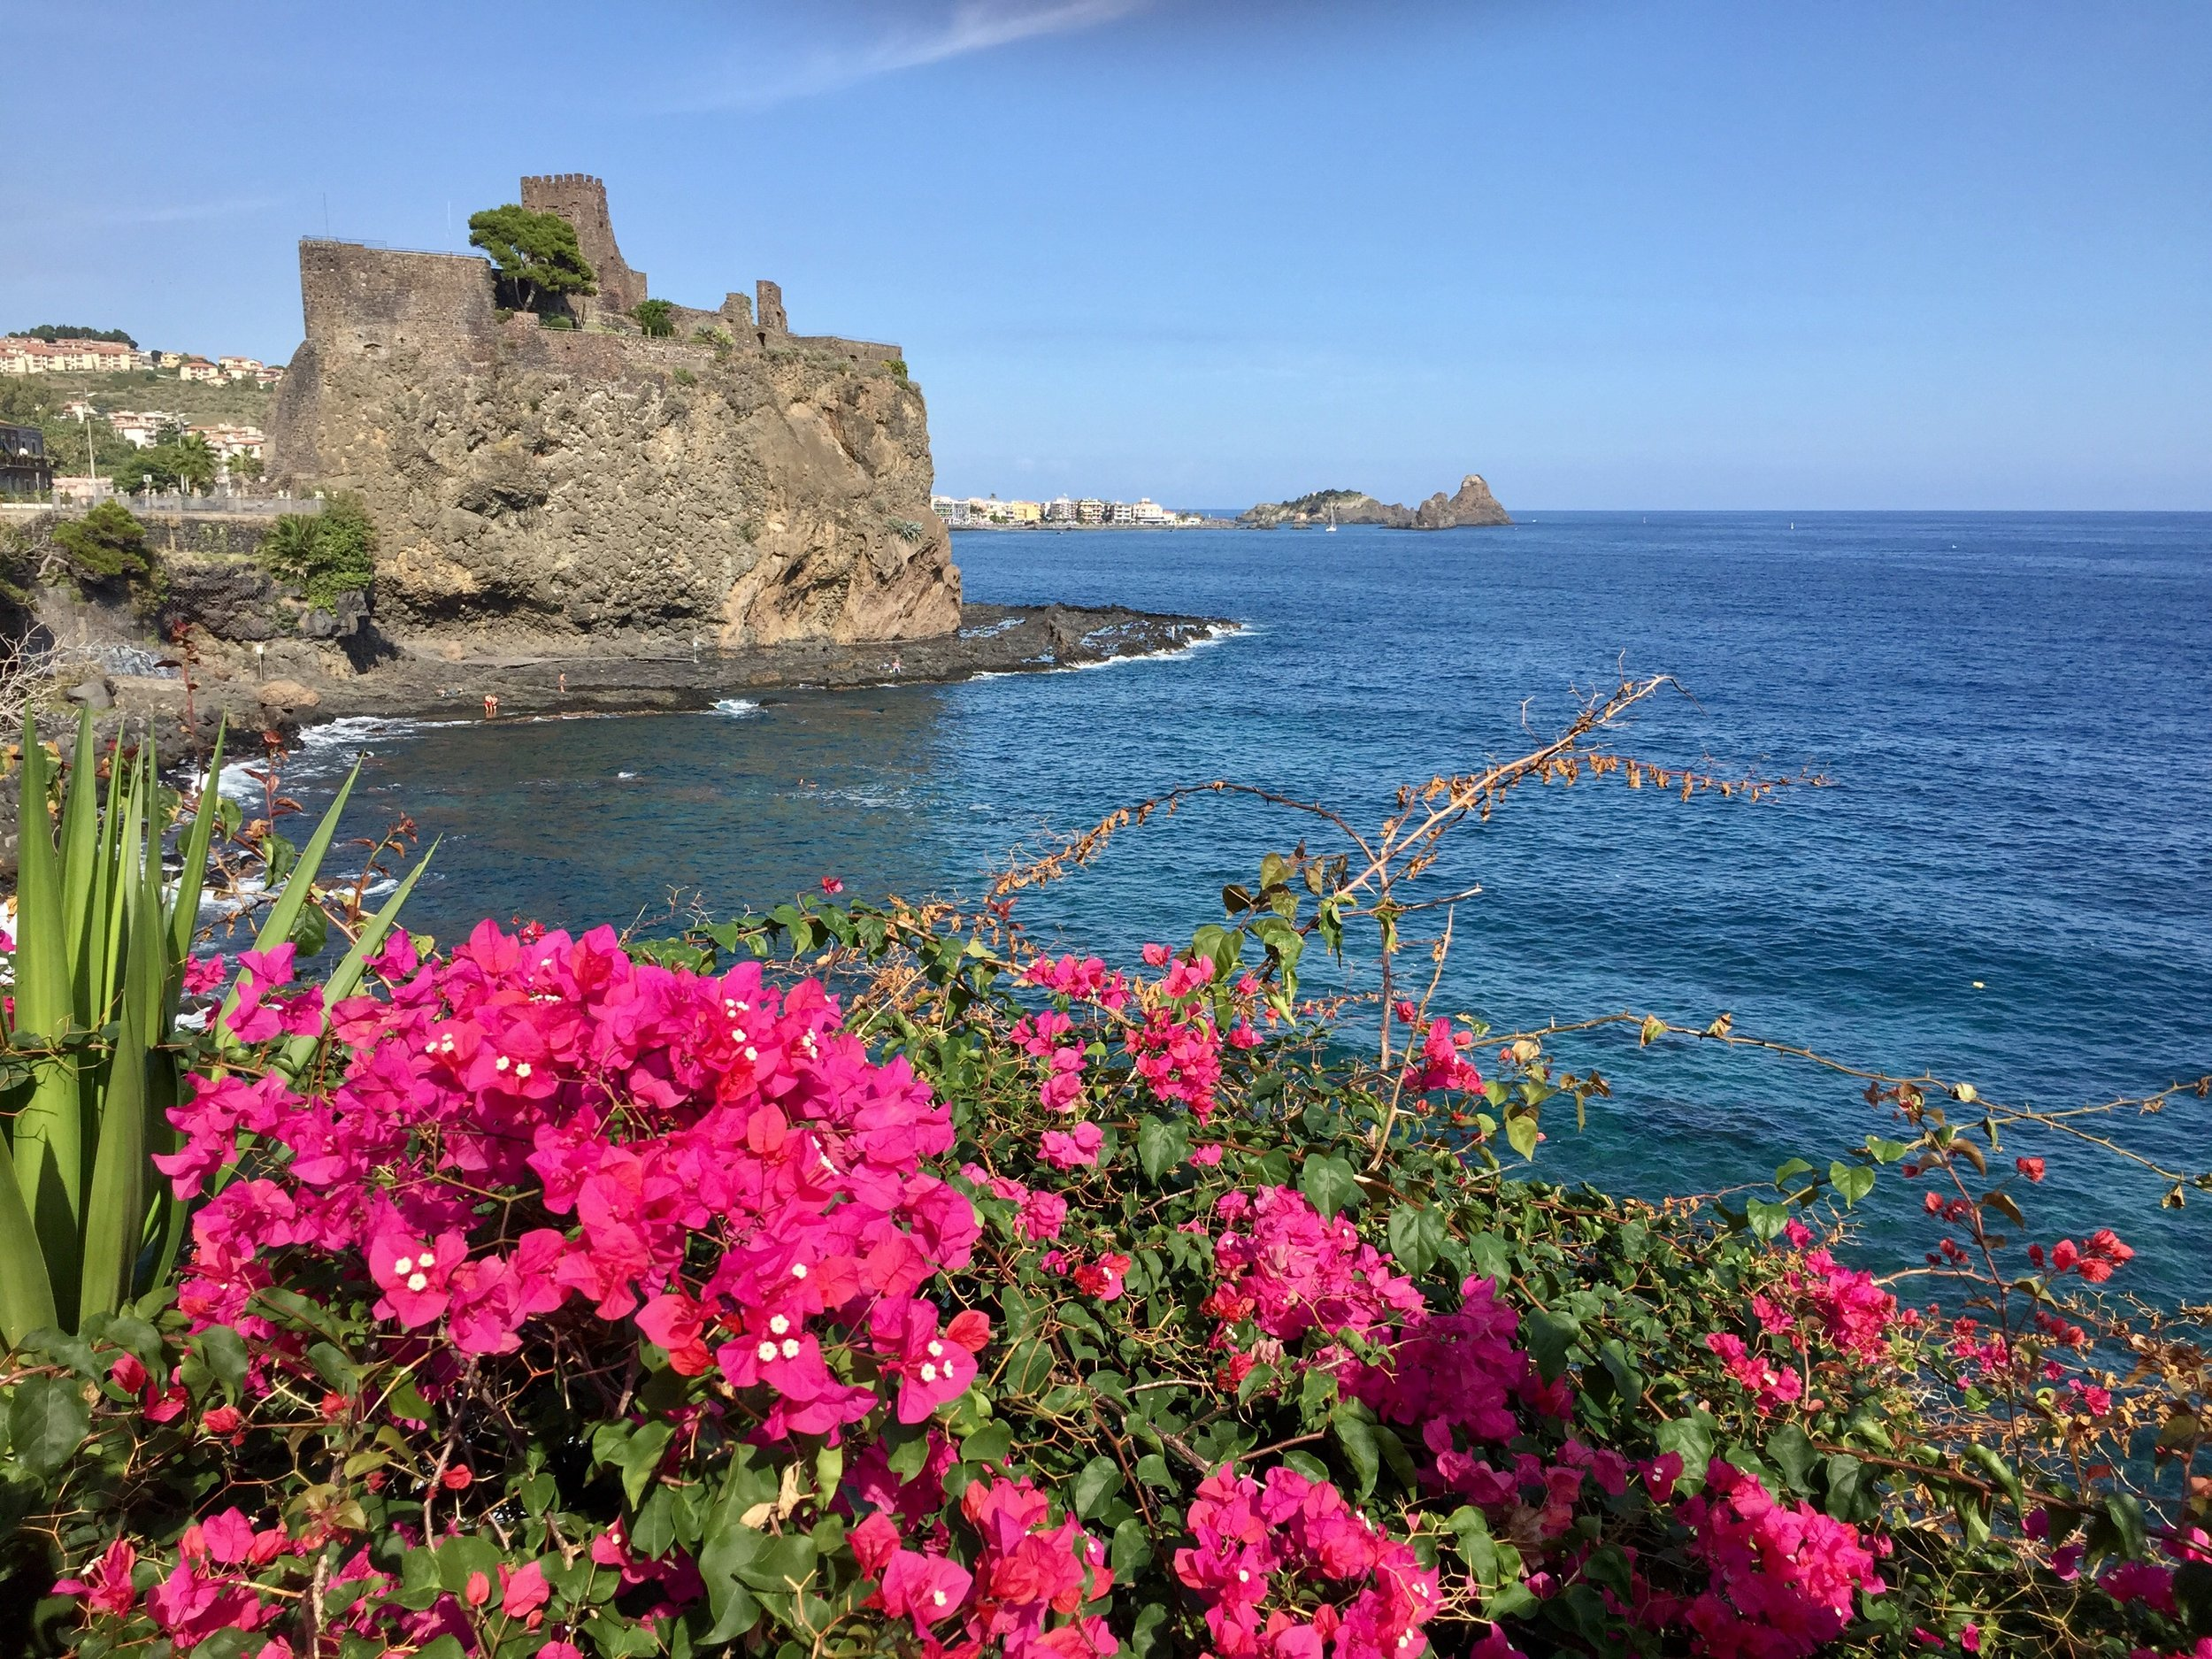 In the scenic seaside town of Acitrezza just outside Catania, you can enjoy a peaceful stroll overlooking the beautiful Aci Castello